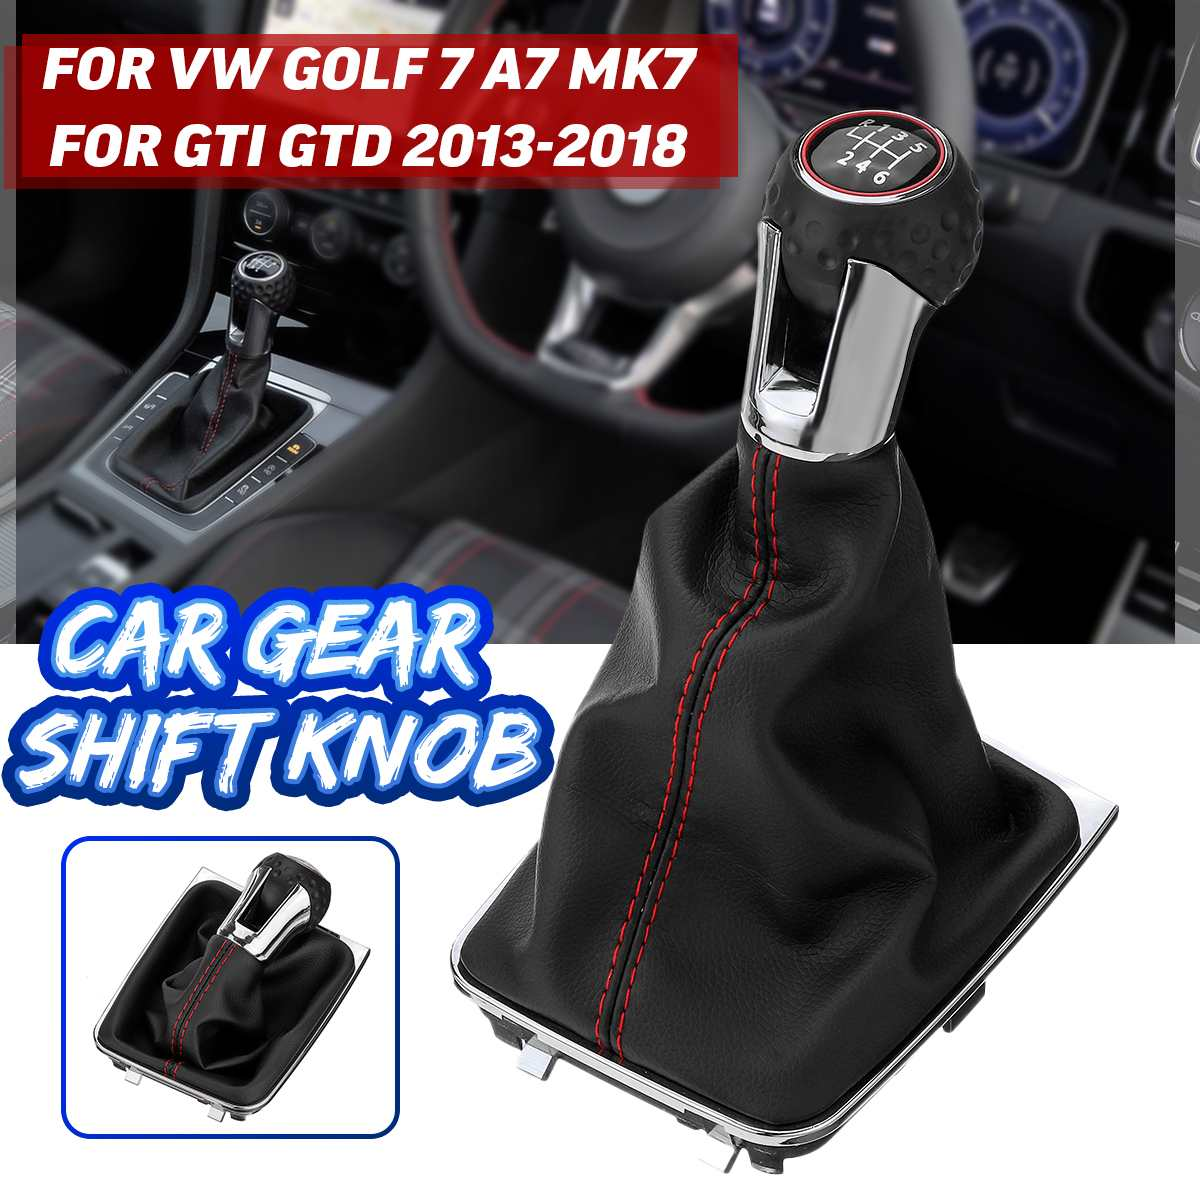 5/<font><b>6</b></font> Speed Car Gear Shift Knob Leather Gaiter Boot Cover Lever Shifter Knob For <font><b>VW</b></font> <font><b>Golf</b></font> 7 A7 MK7 For GTI <font><b>GTD</b></font> 2013-2018 image